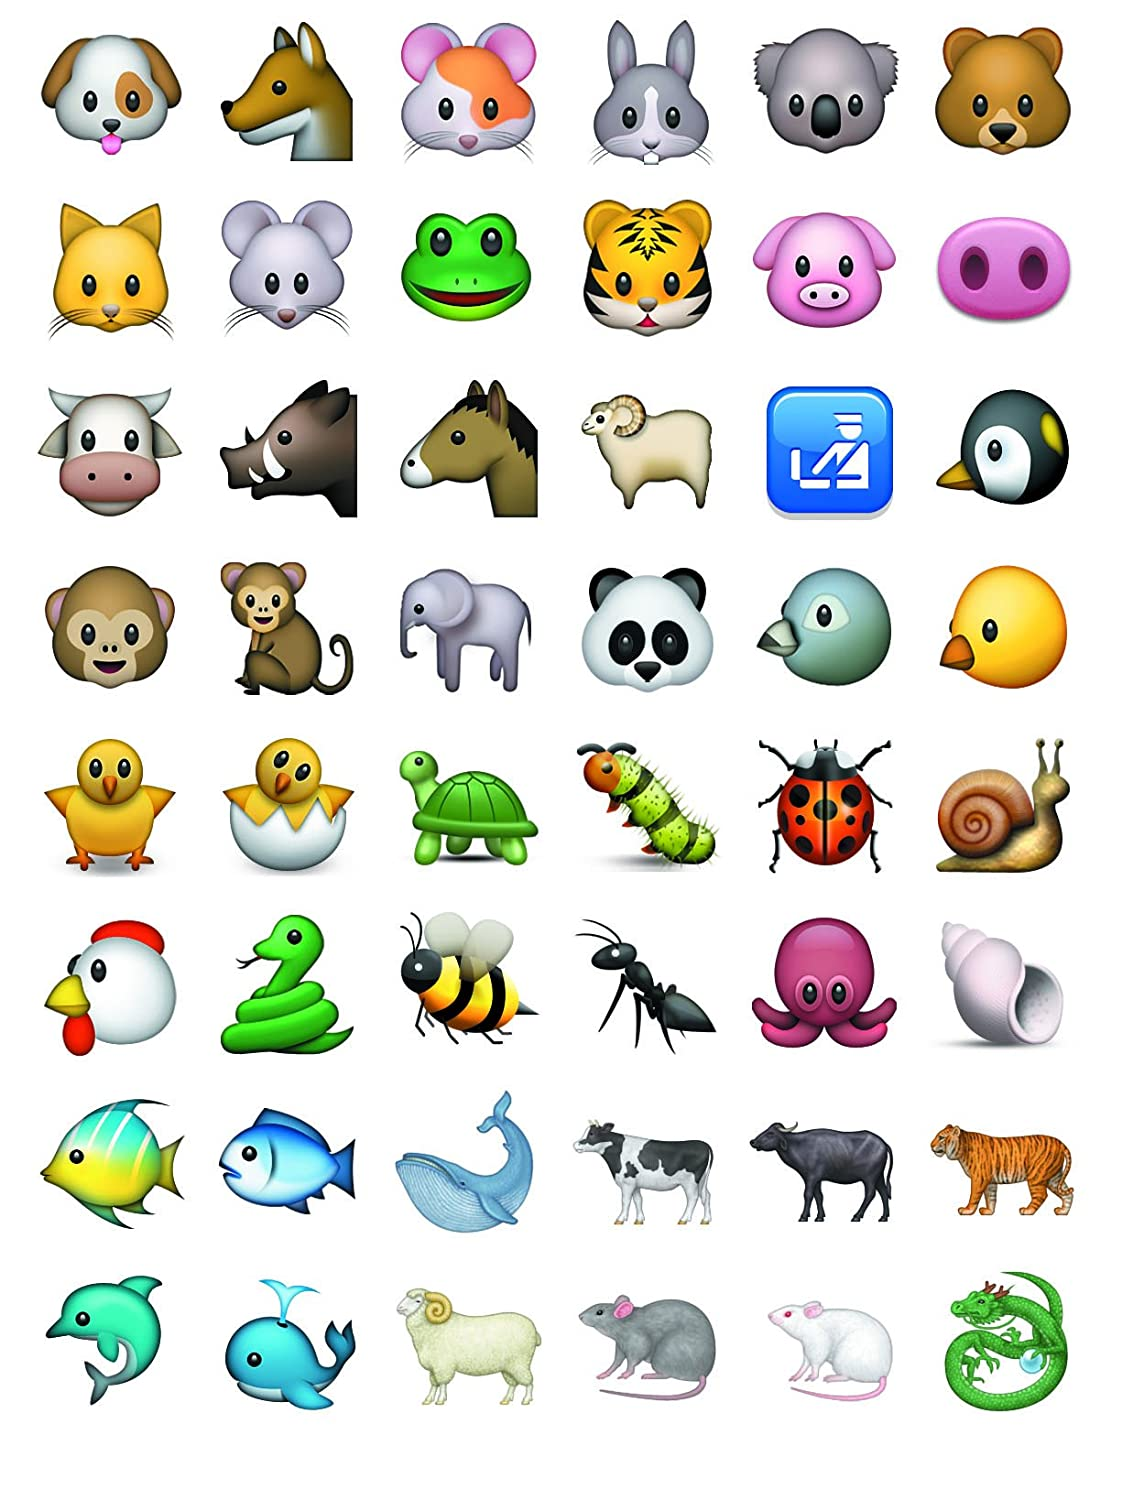 Emoji Jumbo Stickers 960 Most Popular Emoticons Larger In Size Educational and Fun Cool